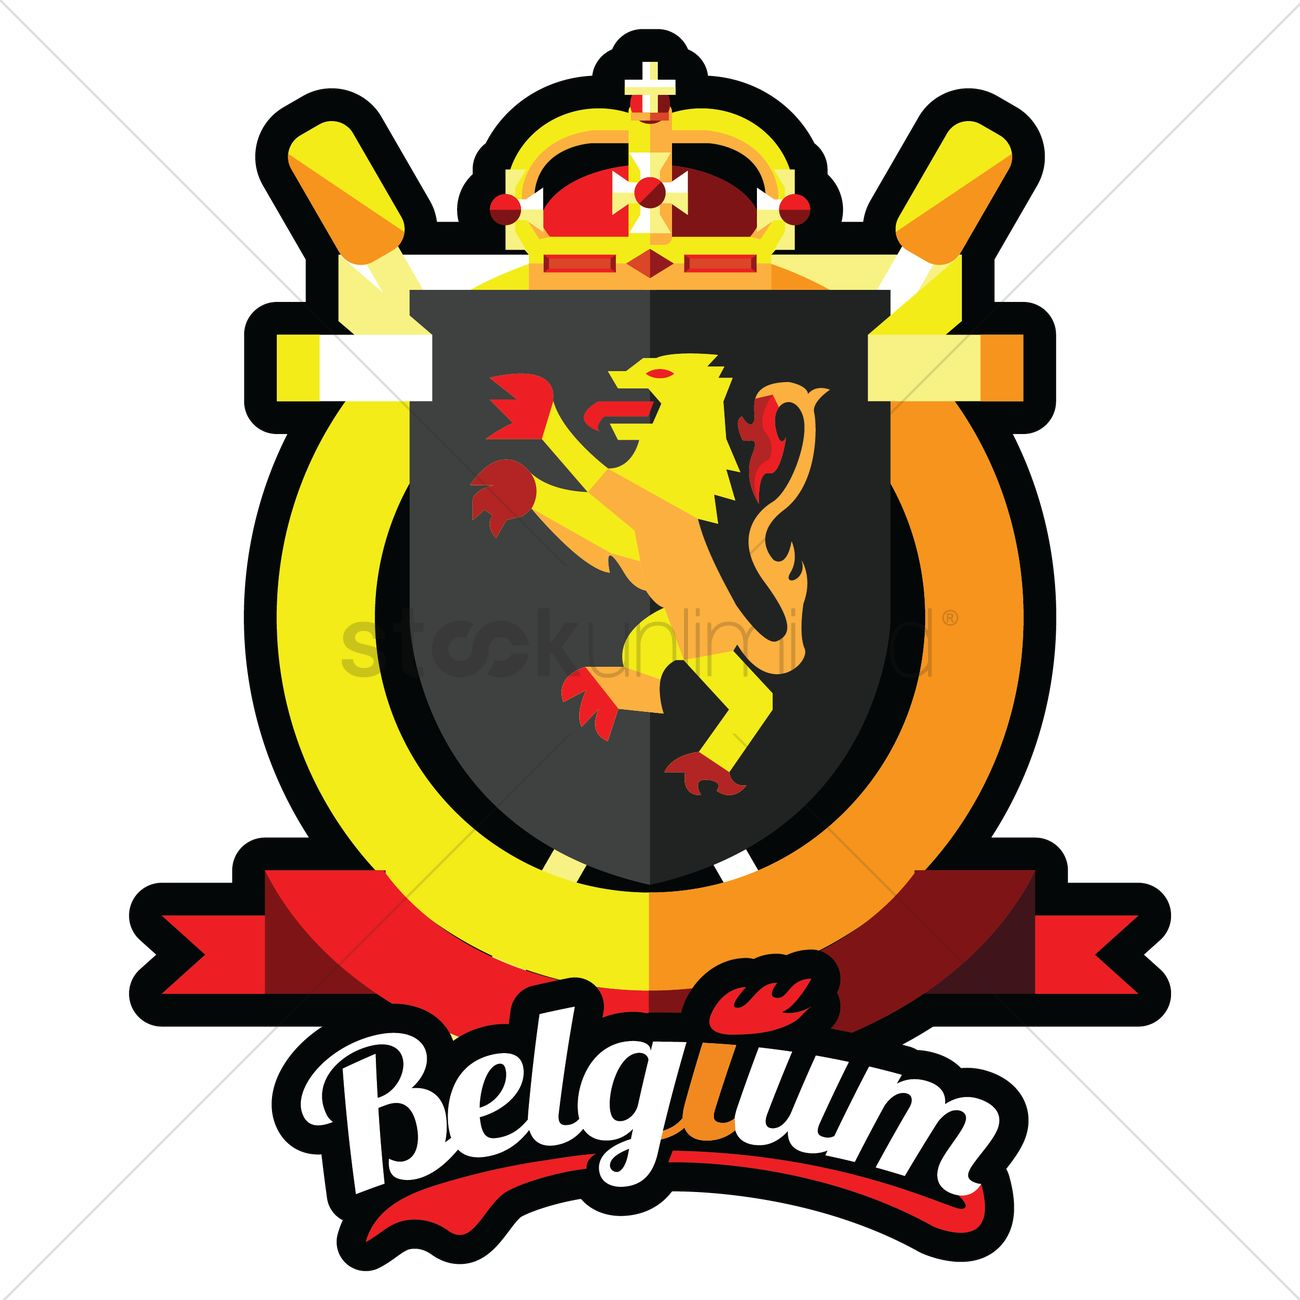 belgium coat of arms vector image 1588040 stockunlimited rh stockunlimited com